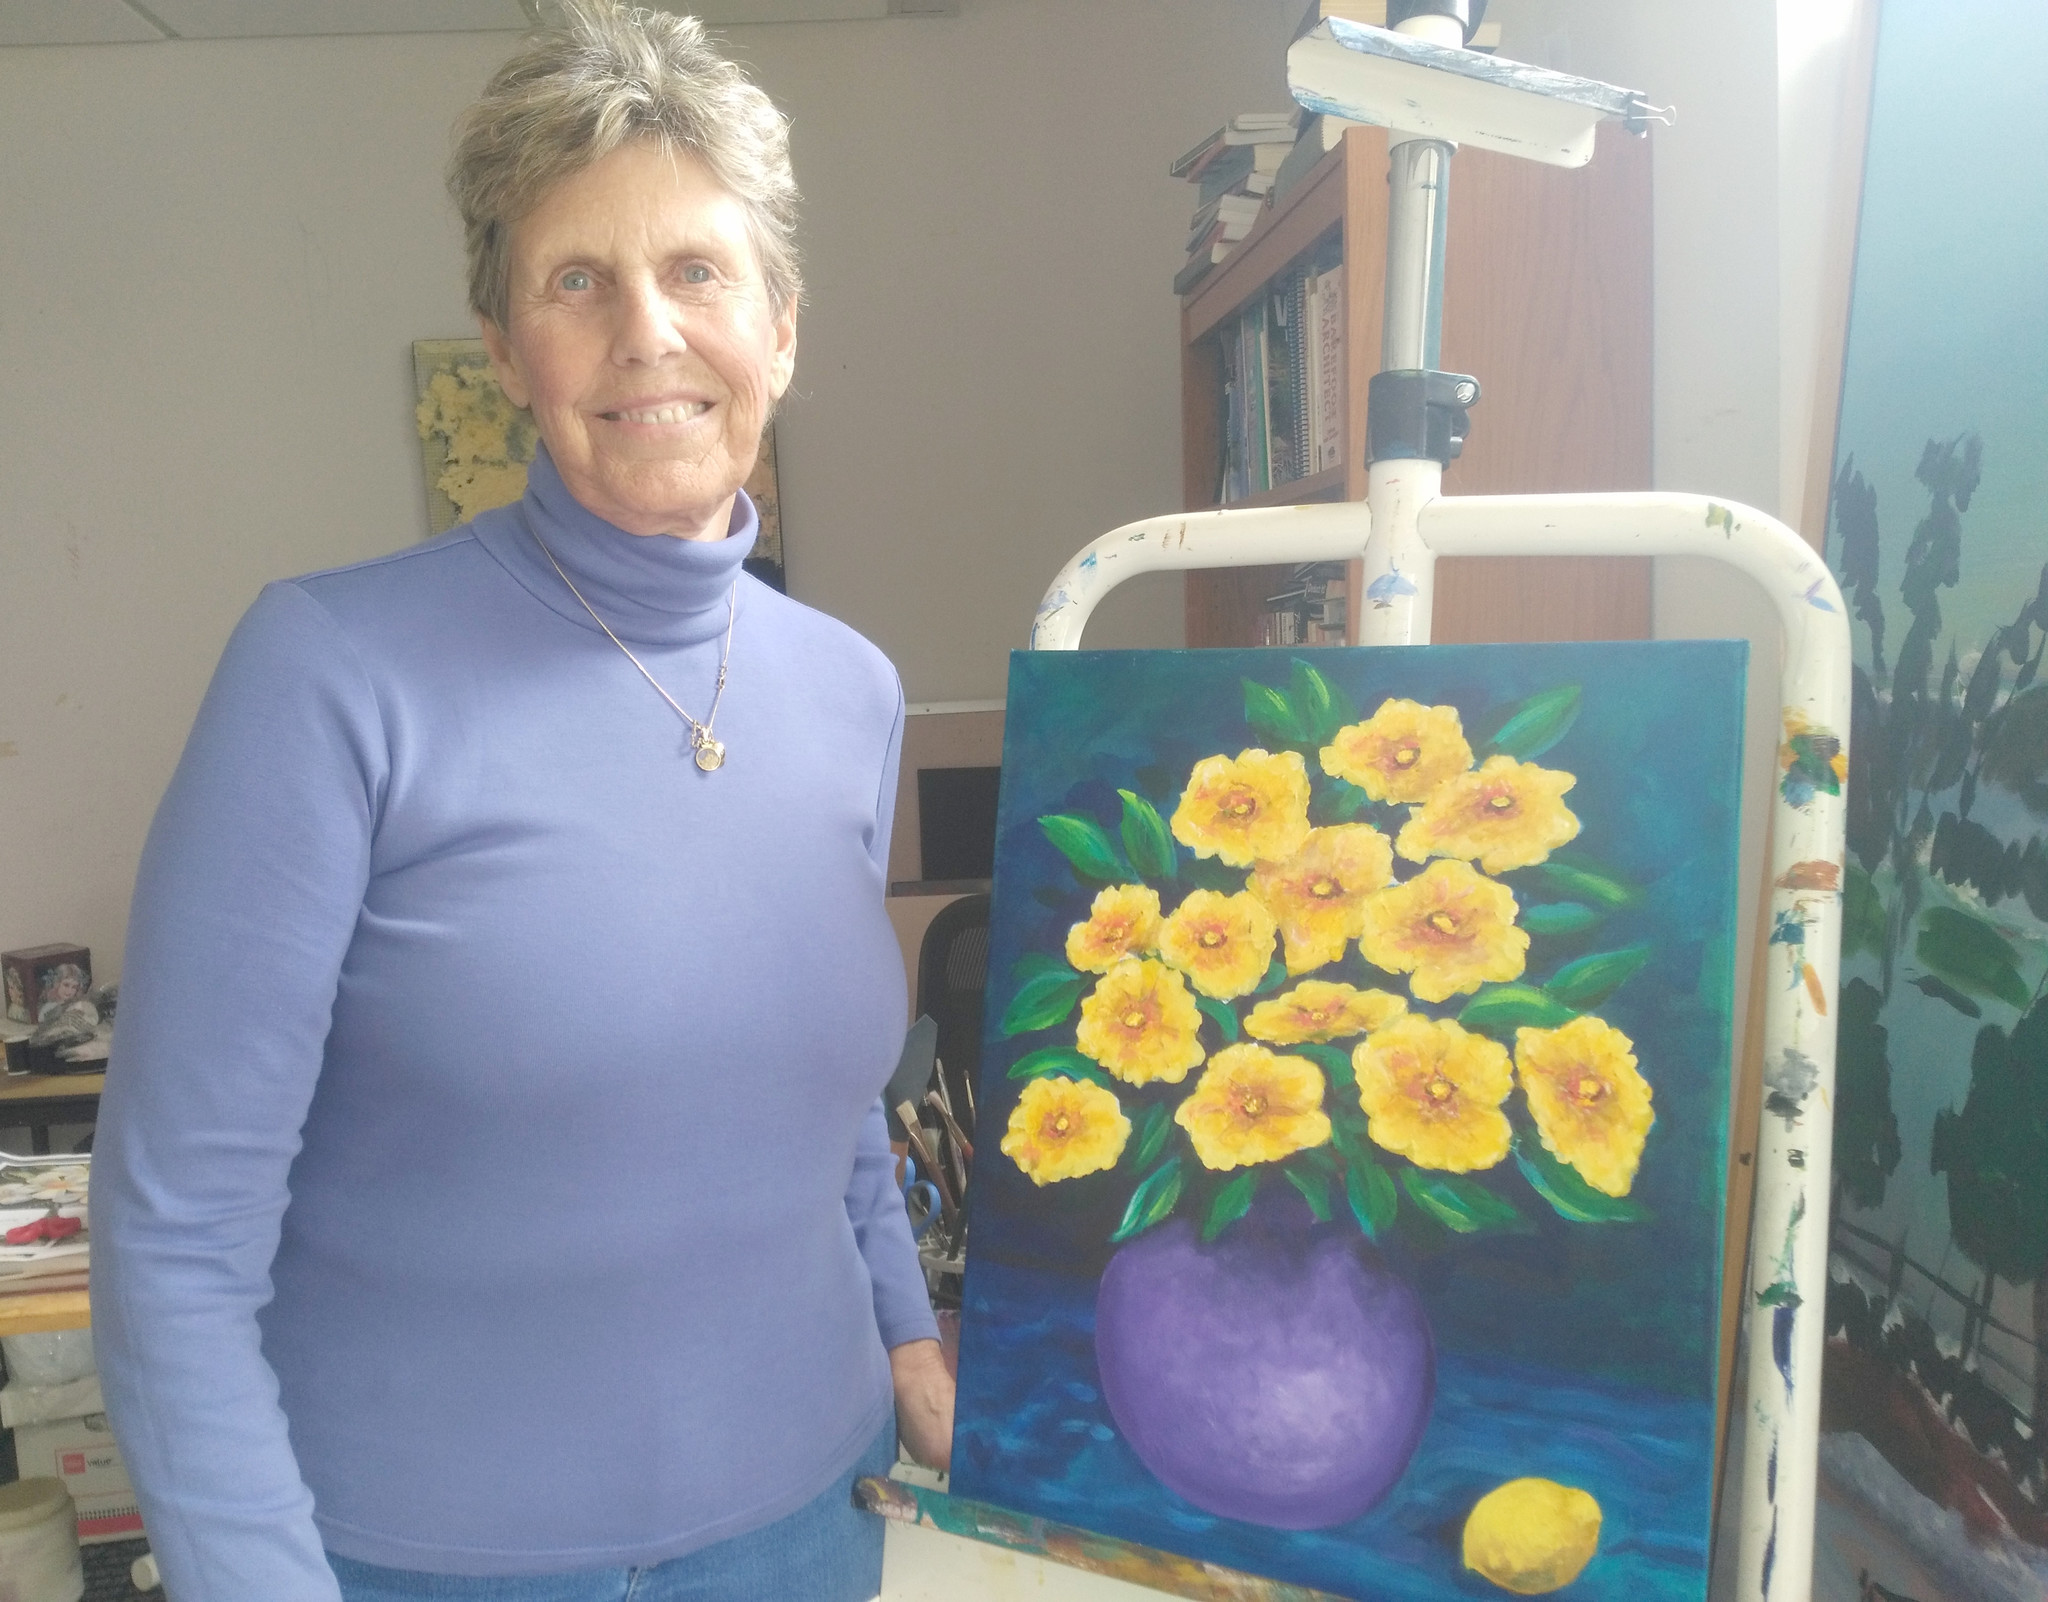 Molly's traditional acrylic paintings can be seen at 2Create Gallery in Ramona and the Del Mar Art Center Gallery.